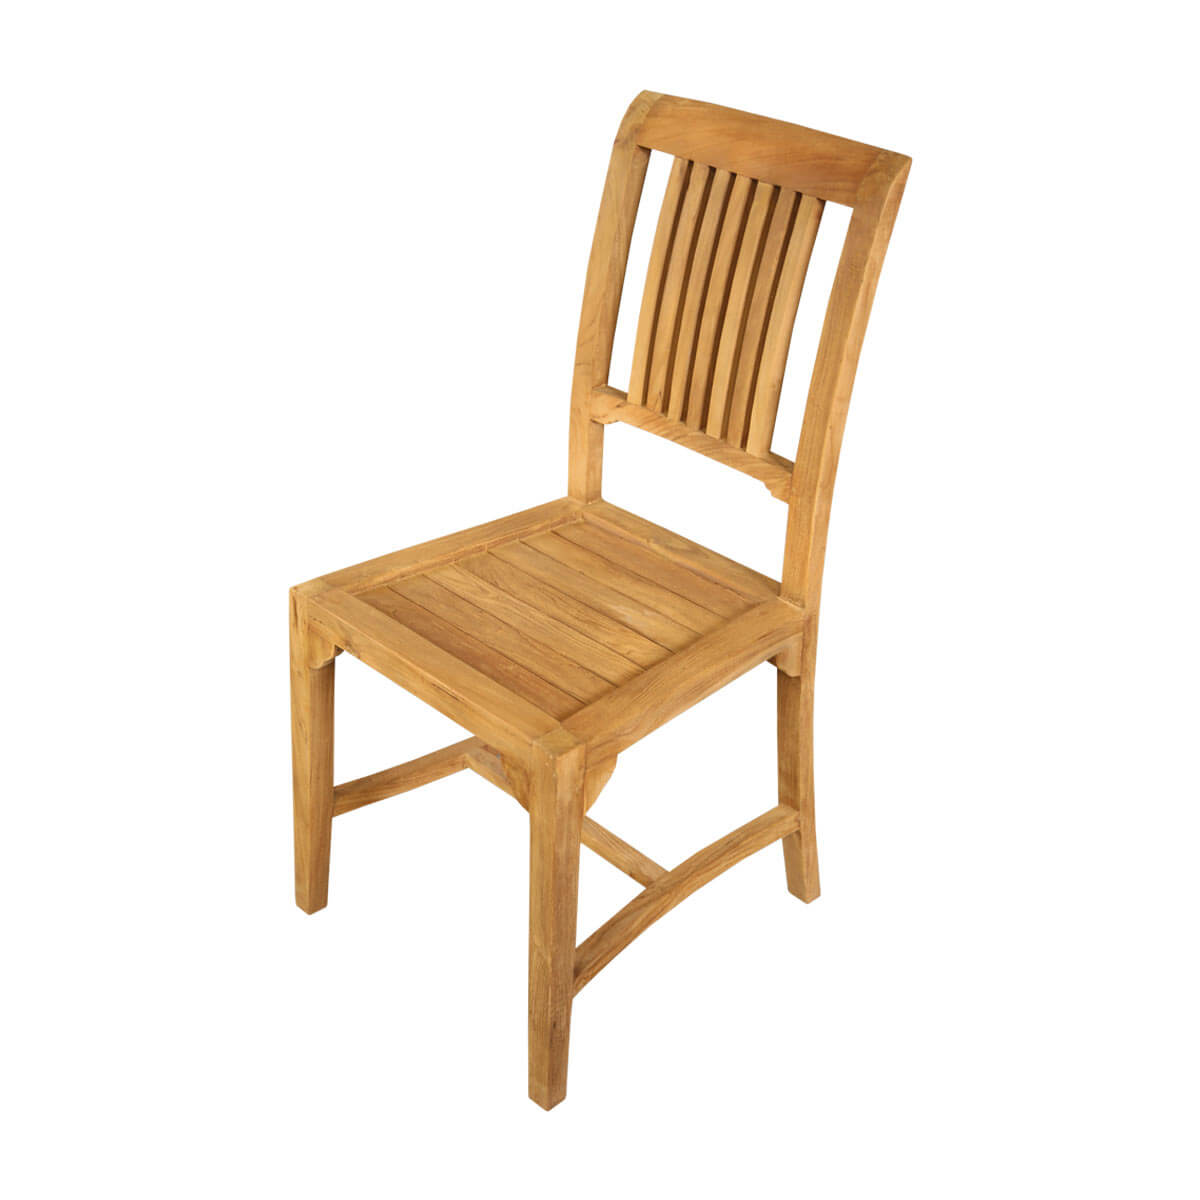 Charmant ... Teak Wood Dining Chair. Hover To Zoom